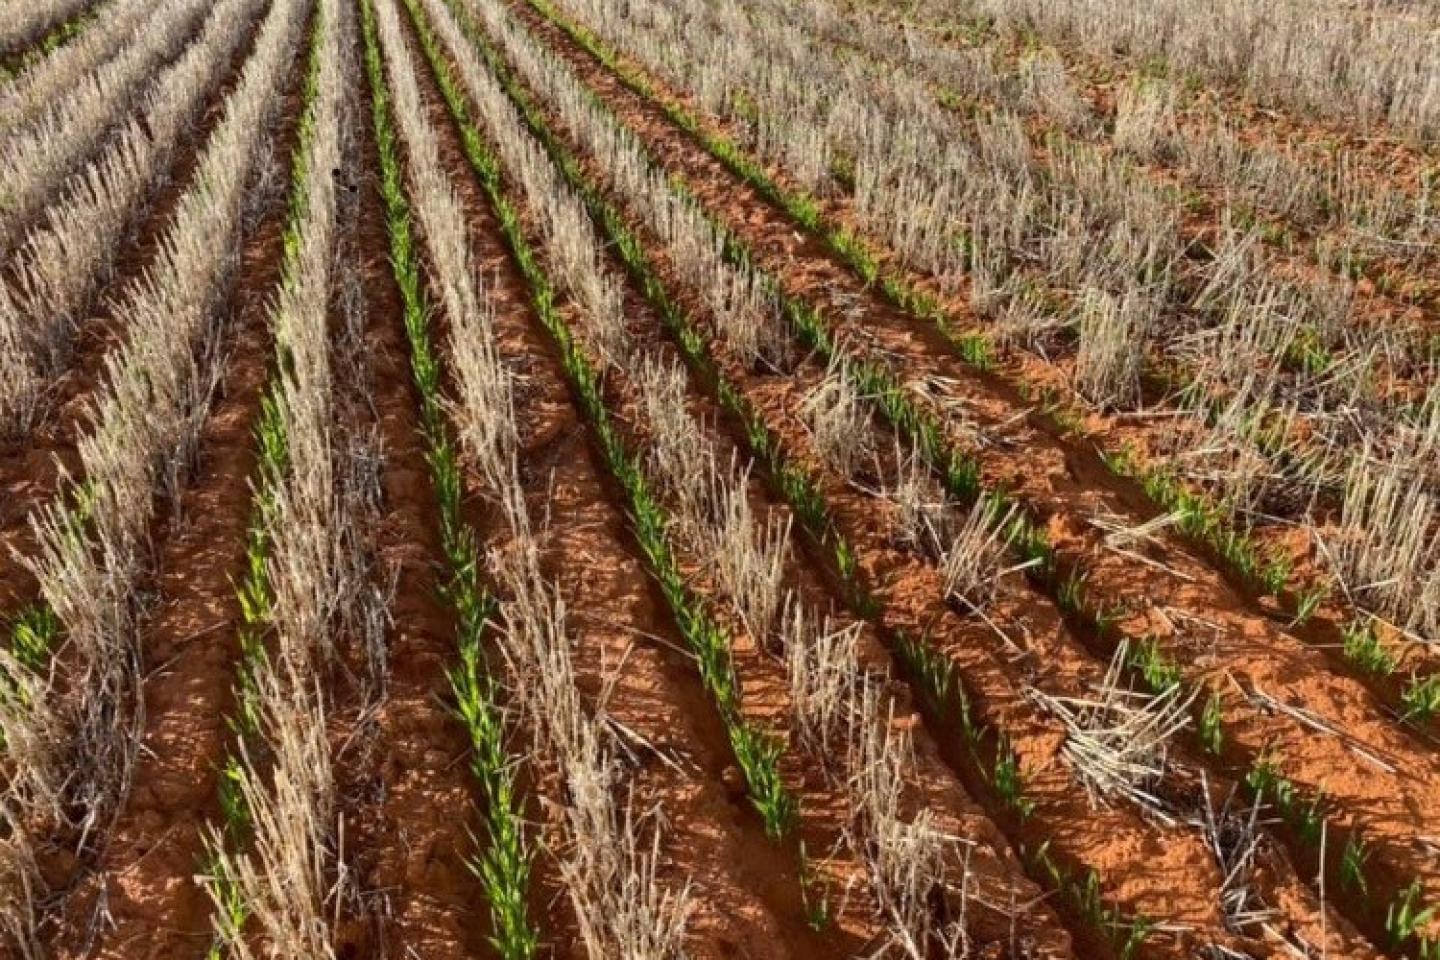 This example of near-row sowing is where Kweda farmer Jeff Edwards is heading with trials this year leading towards establishing the BioFurrow™ system in the near future.